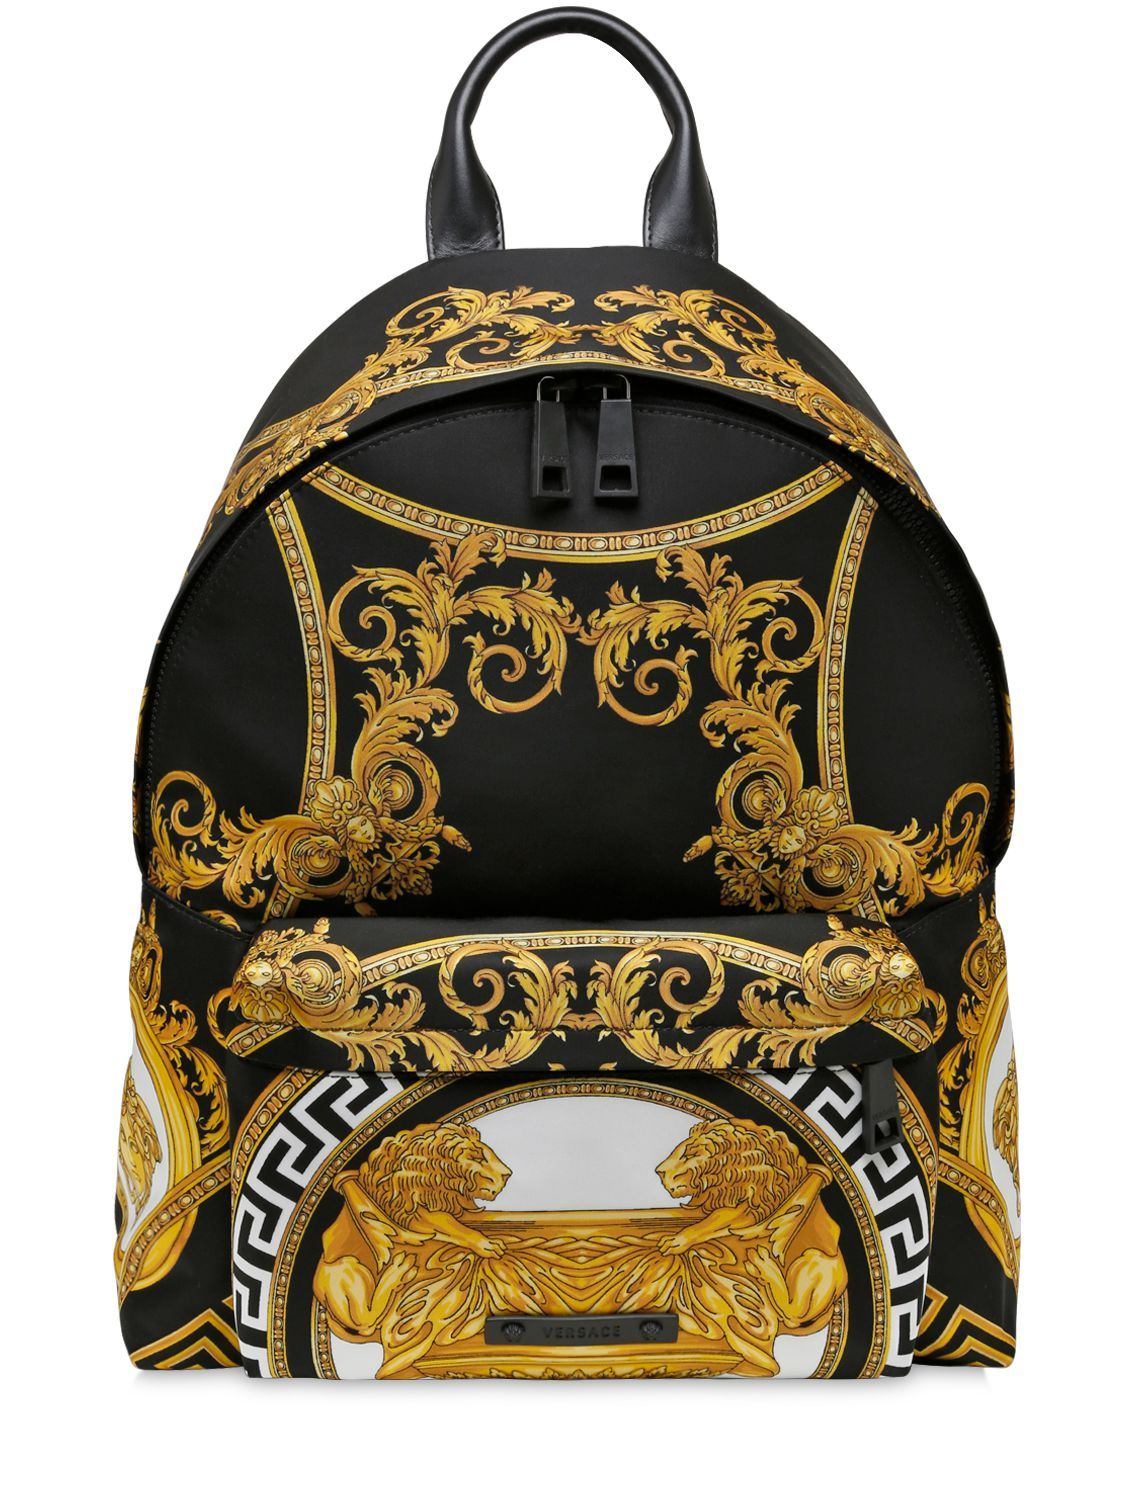 feb6d9e8570 versace shoes cheap, VERSACE COUPE DES DIEUX PRINTED NYLON BACKPACK  BLACK GOLD MEN BAGS BACKPACKS,versace shoes red, versace bags outlet Sale  amazing ...